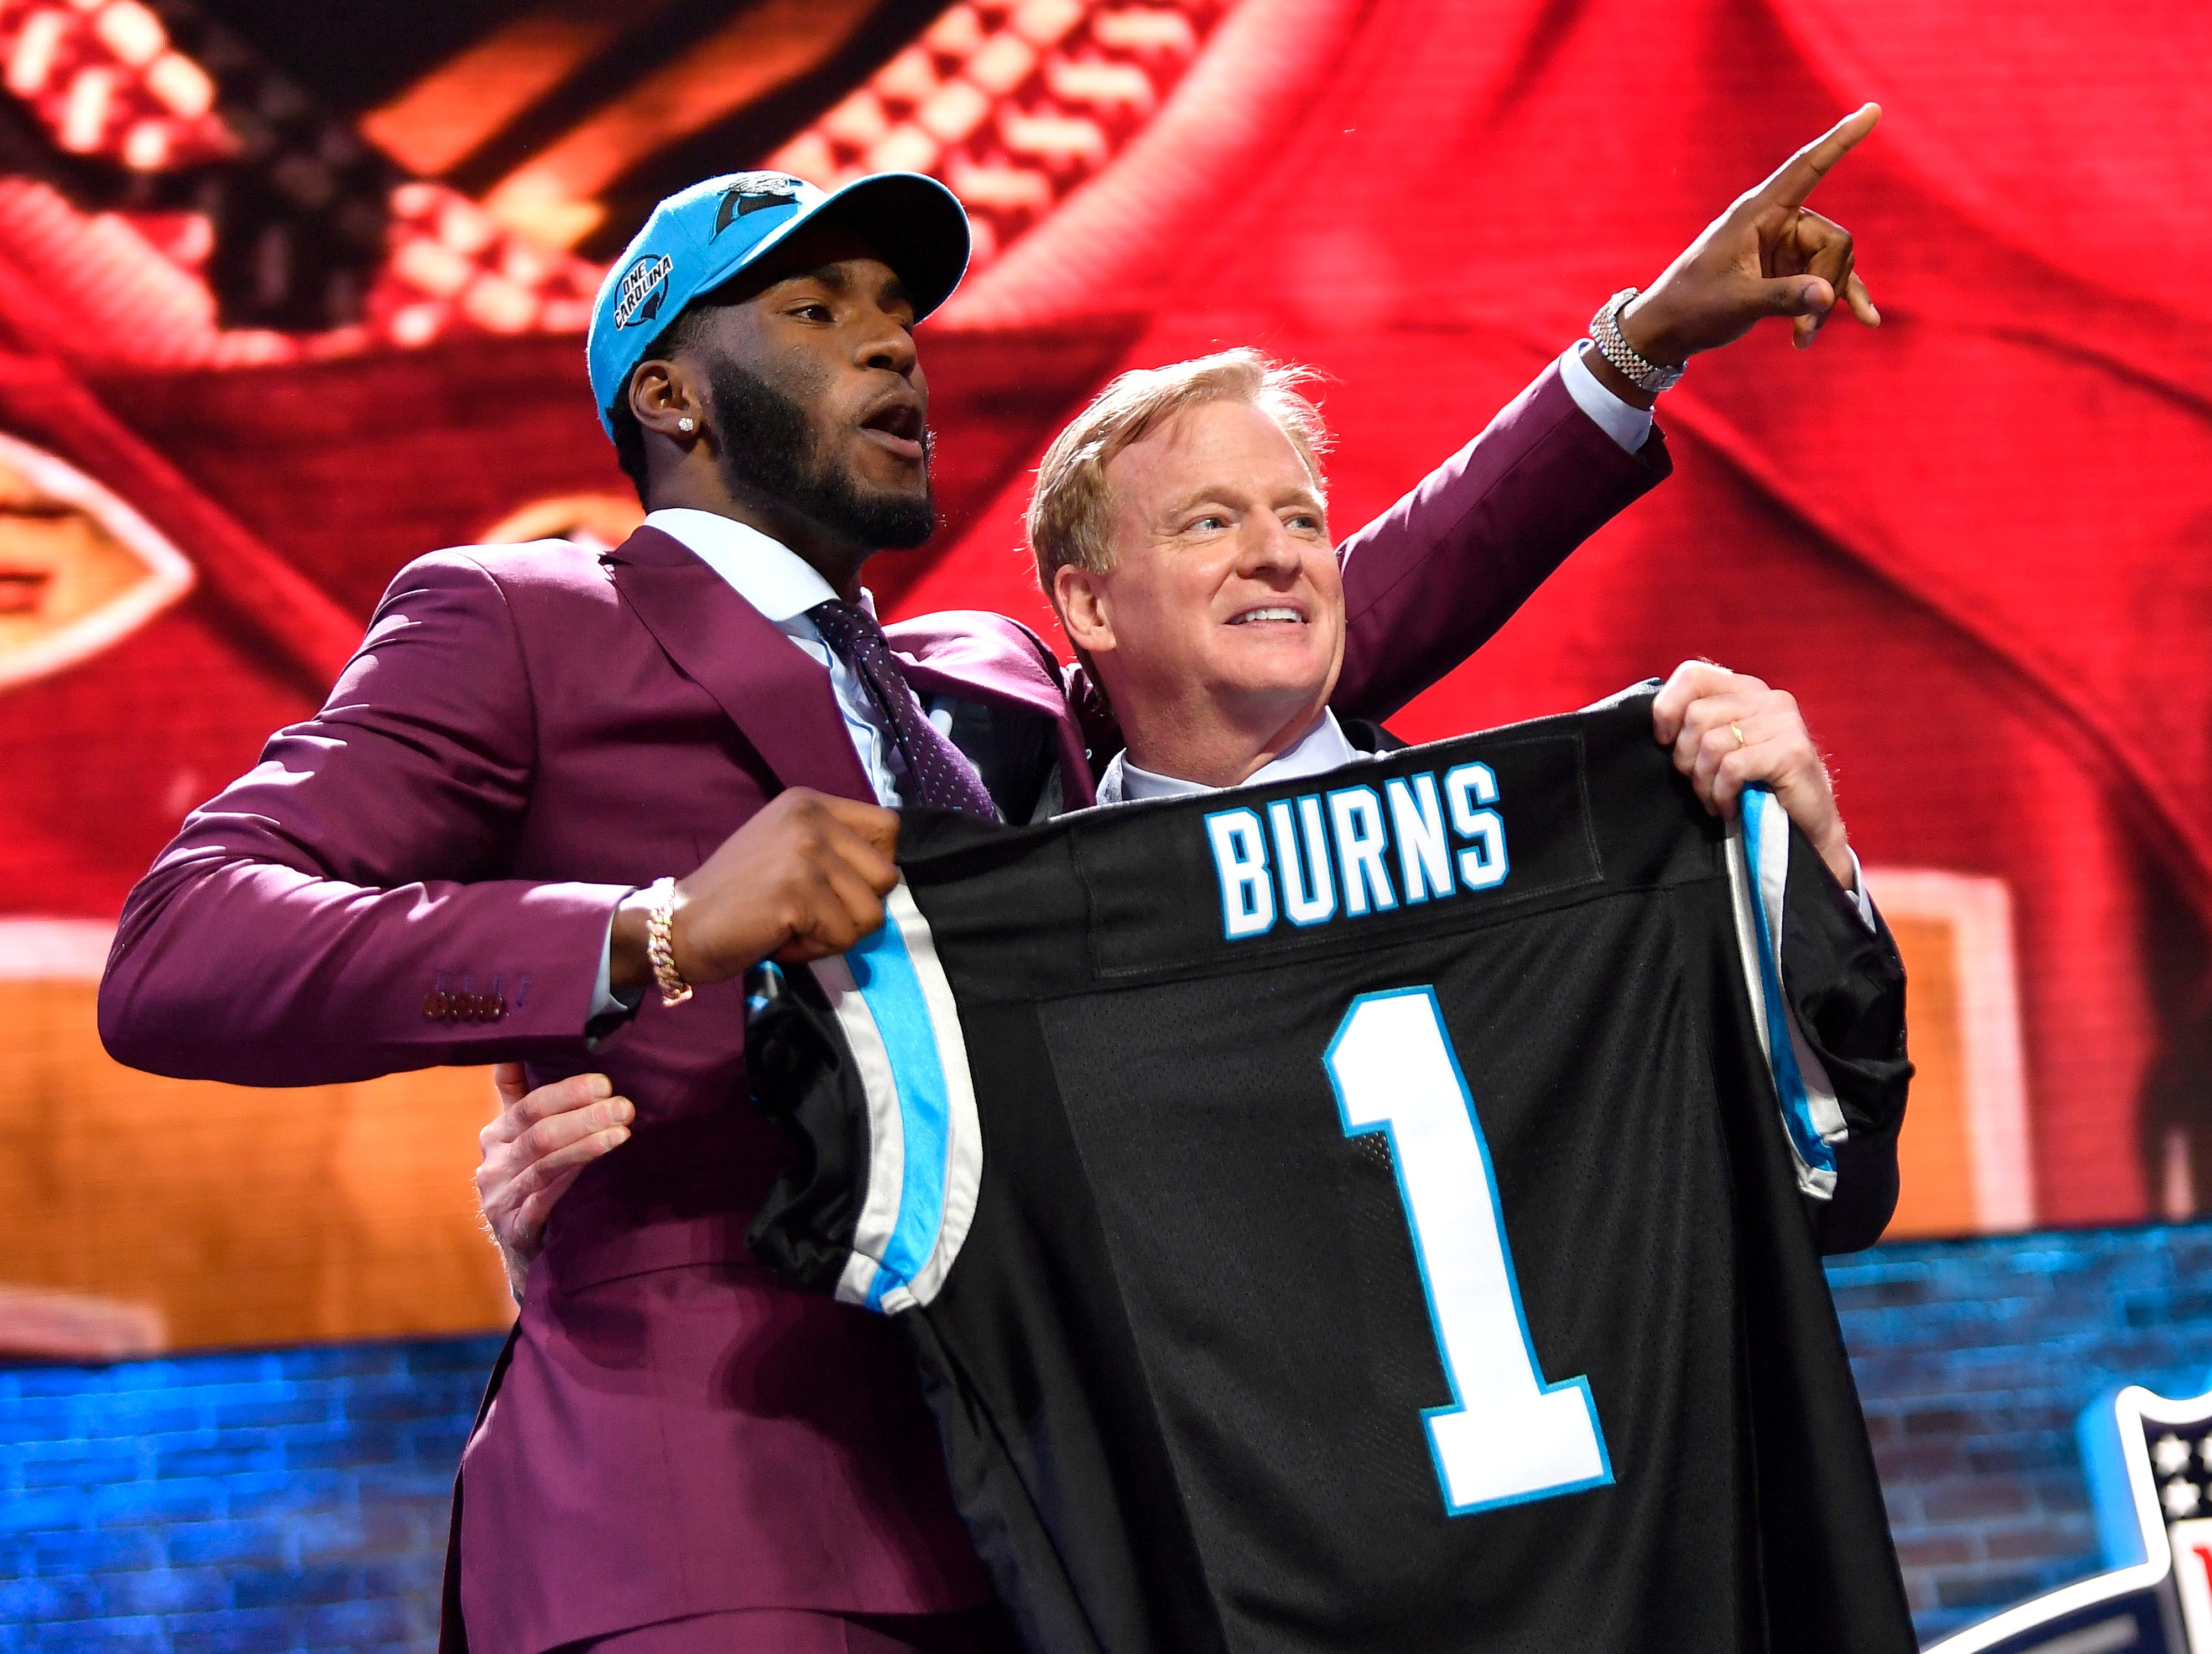 Brian Burns celebrates his pick by the Carolina Panthers with NFL Commissioner Roger Goodell during the first round of the NFL Draft Thursday, April 25, 2019, in Nashville, Tenn.